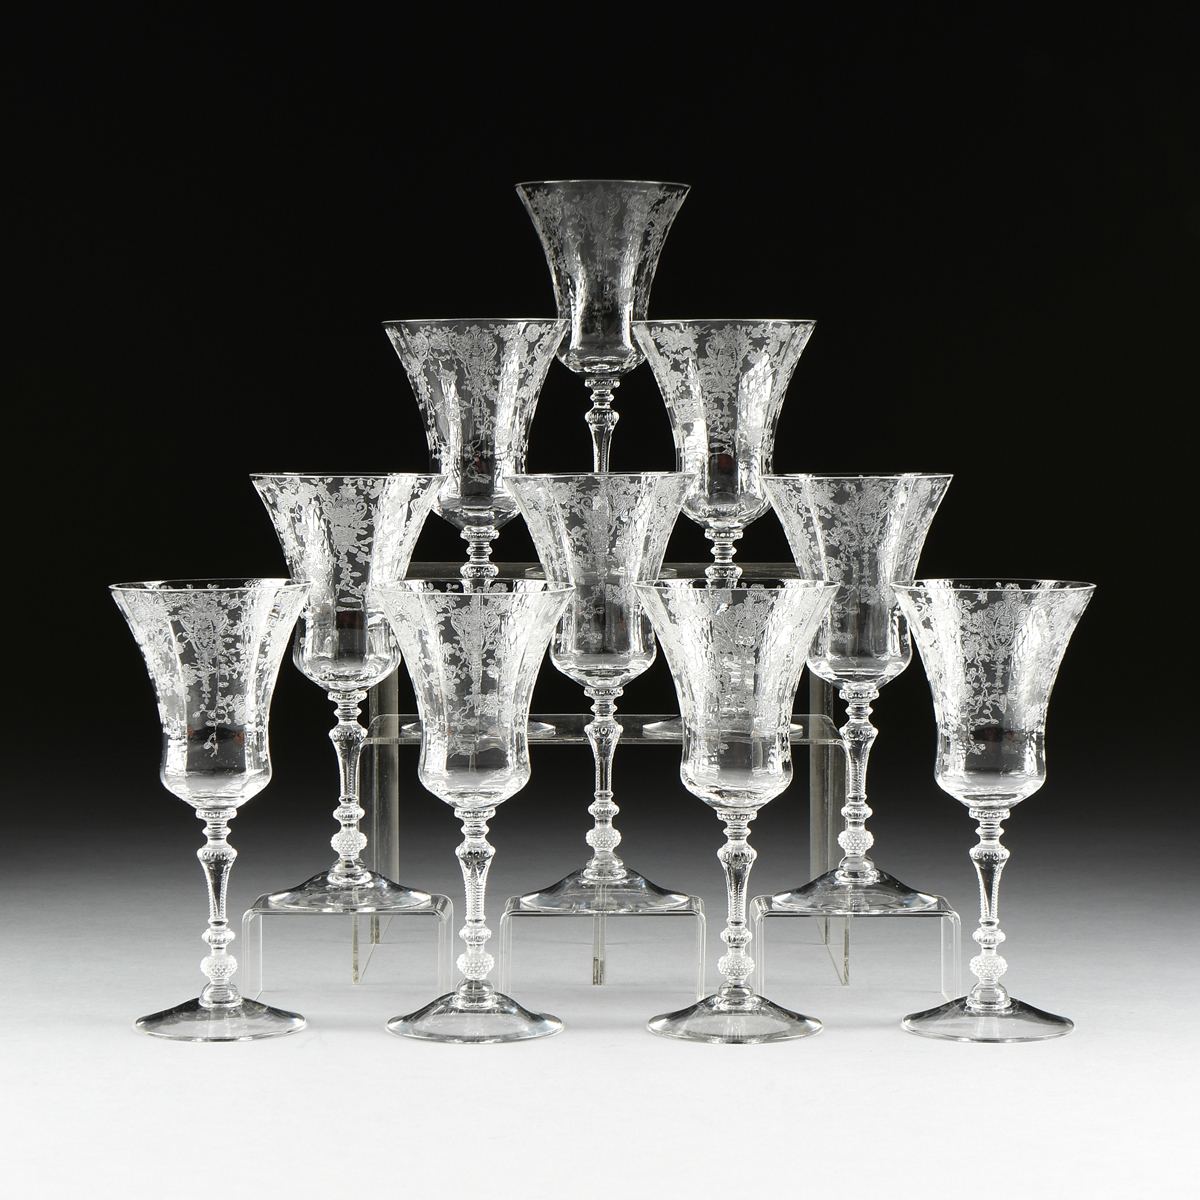 Lot 13 - A SET OF ELEVEN ACID ETCHED LOBED WATER GOBLET STEMWARE, AMERICAN, FIRST HALF 20TH CENTURY, the